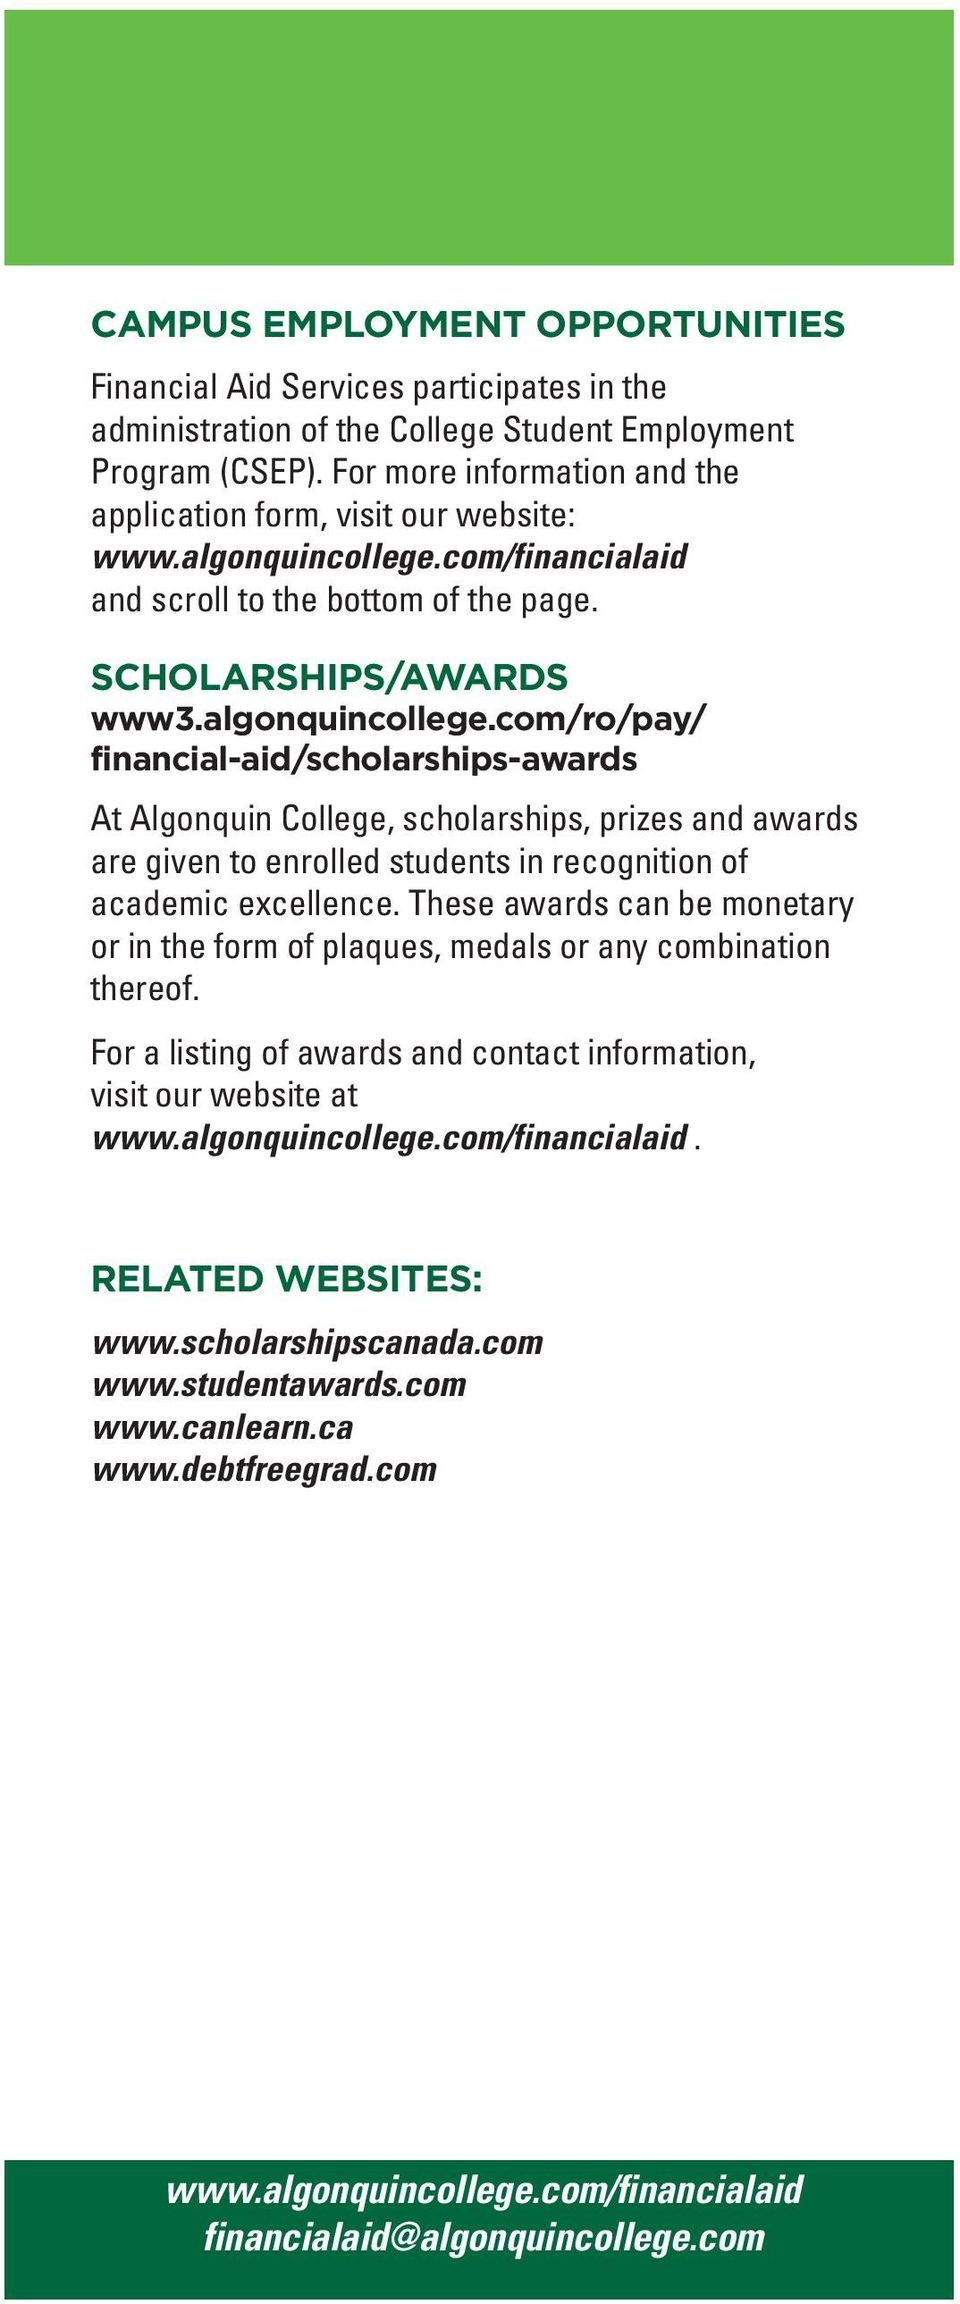 SCHOLARSHIPS/AWARDS financial-aid/scholarships-awards At Algonquin College, scholarships, prizes and awards are given to enrolled students in recognition of academic